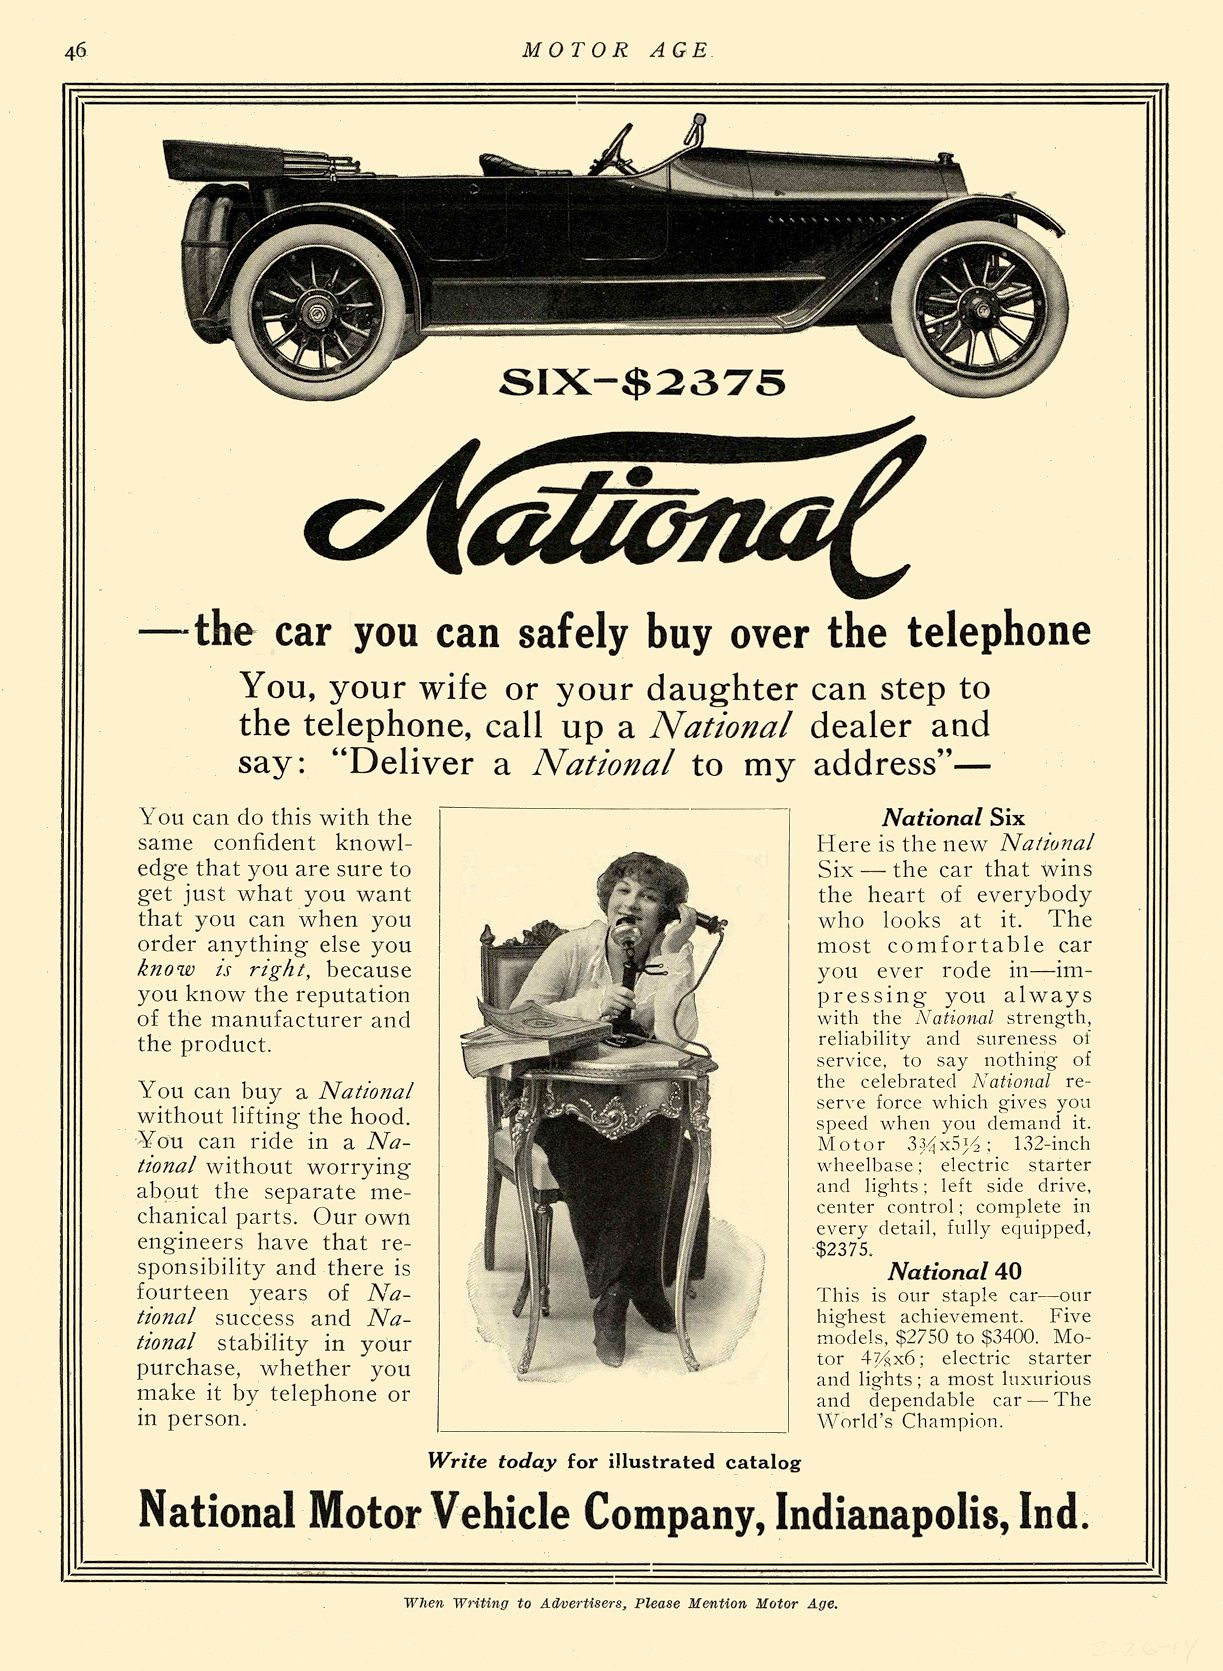 1914 2 26 NATIONAL — the car you can buy over the telephone National Motor Vehicle Company Indianapolis, IND MOTOR AGE February 26, 1914 8.5″x12″ page 46